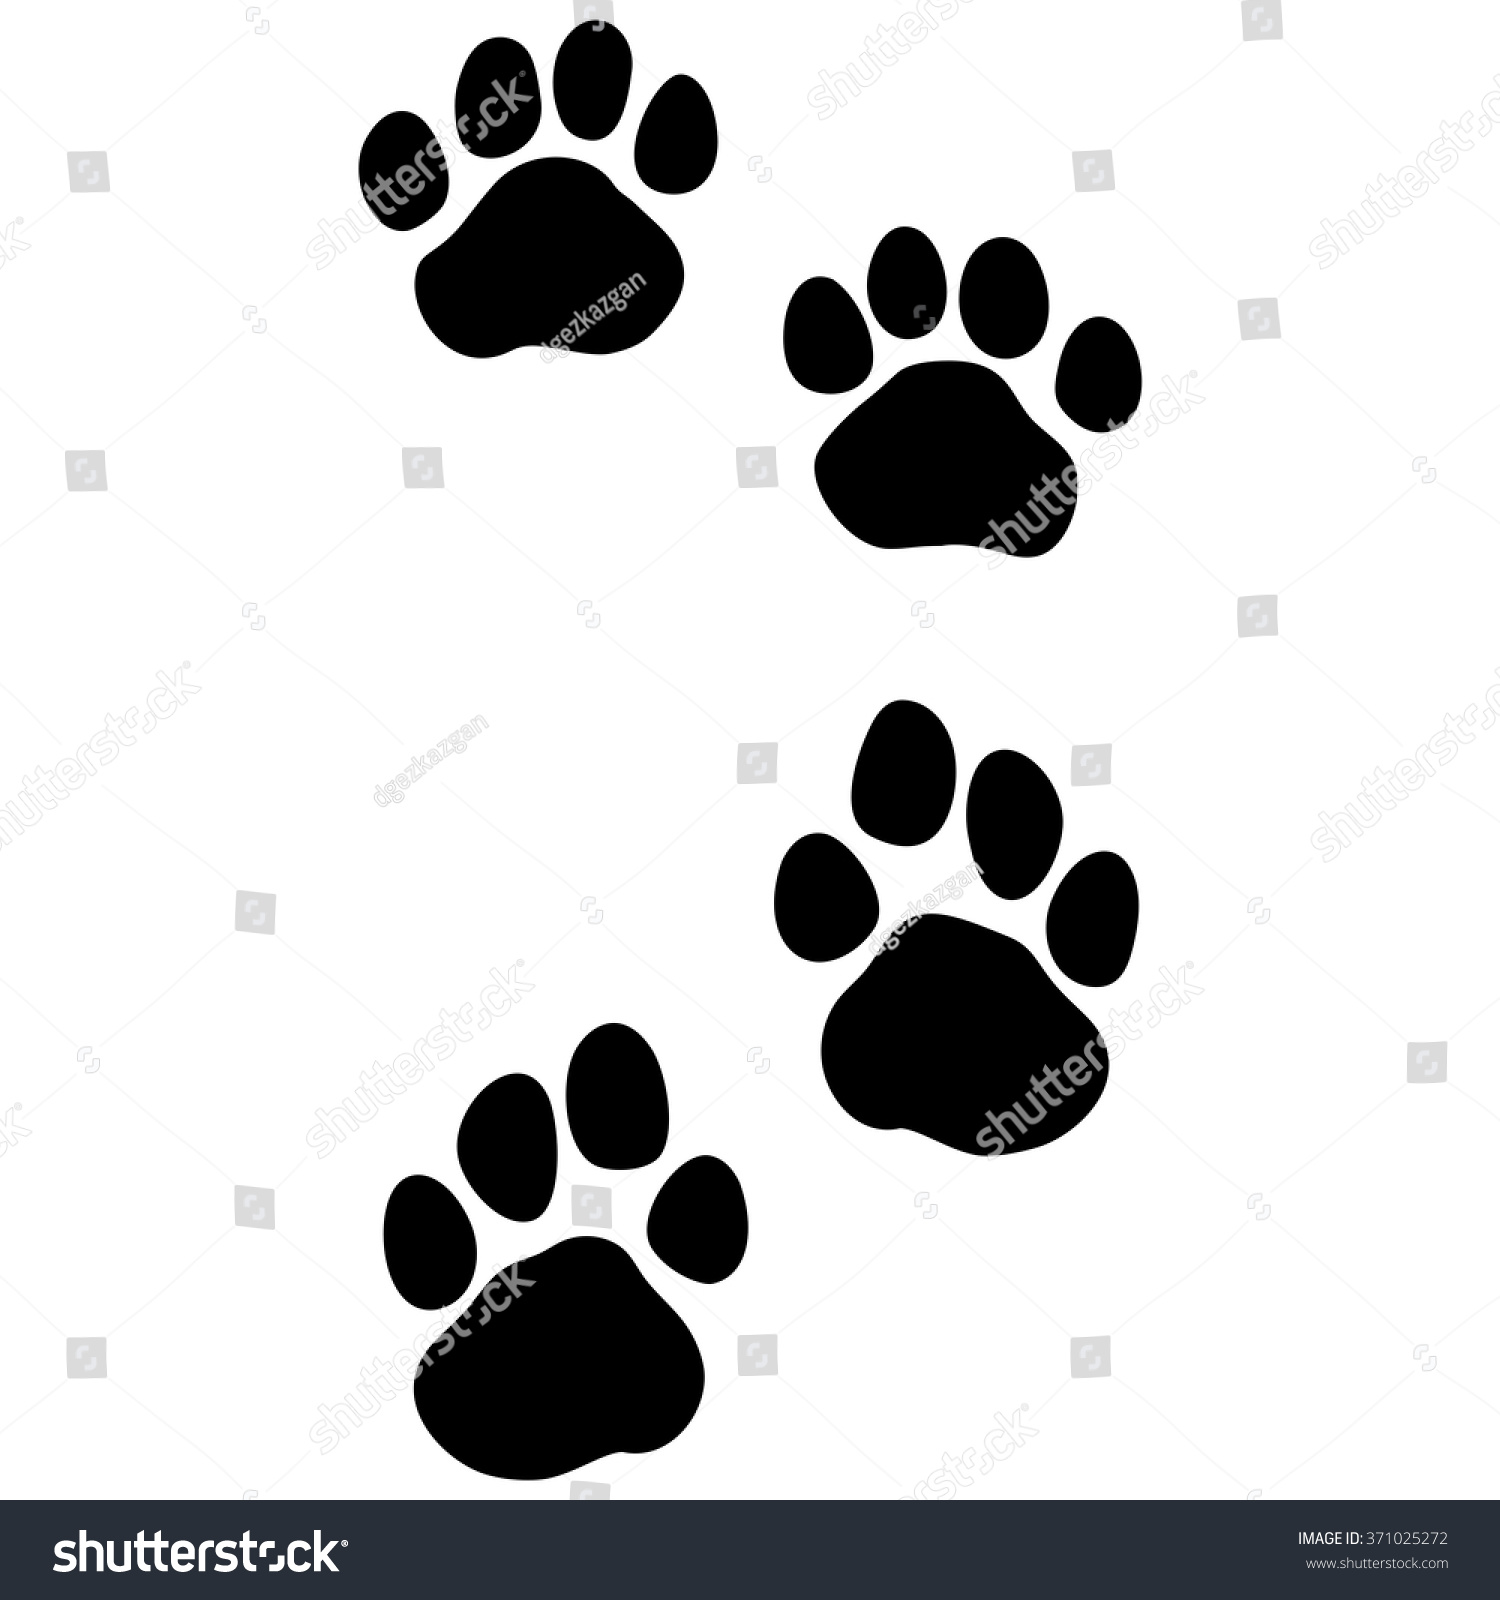 Tiger paw print background - photo#10